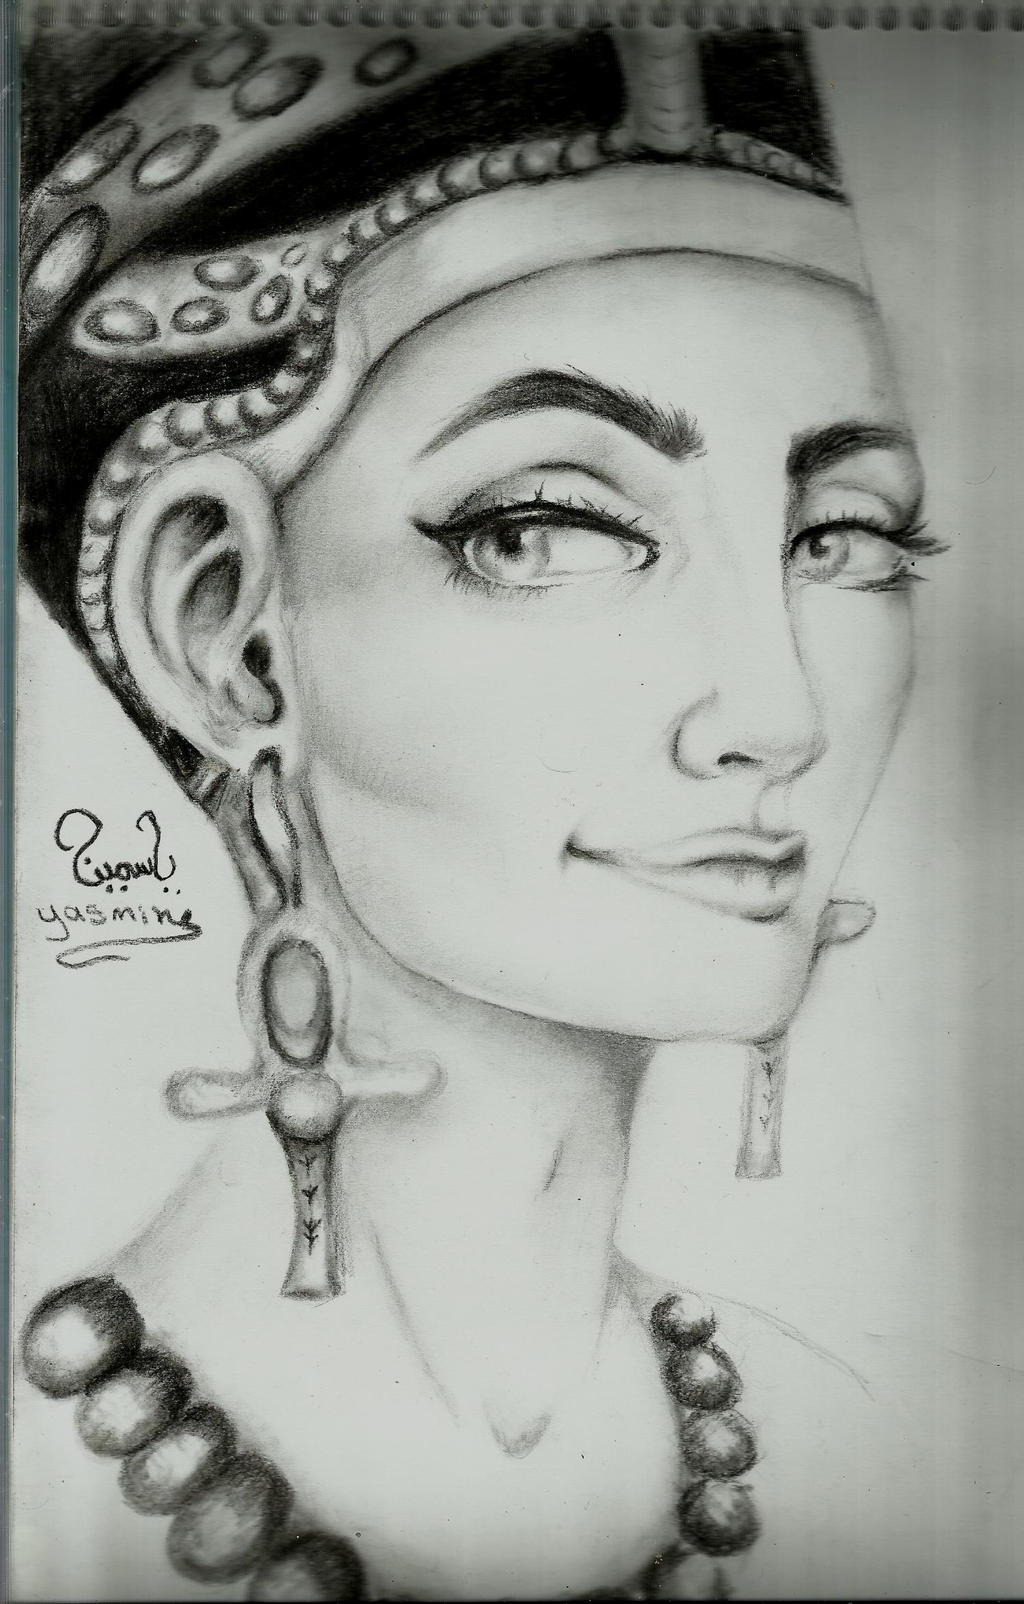 egyptian queen drawing - photo #20